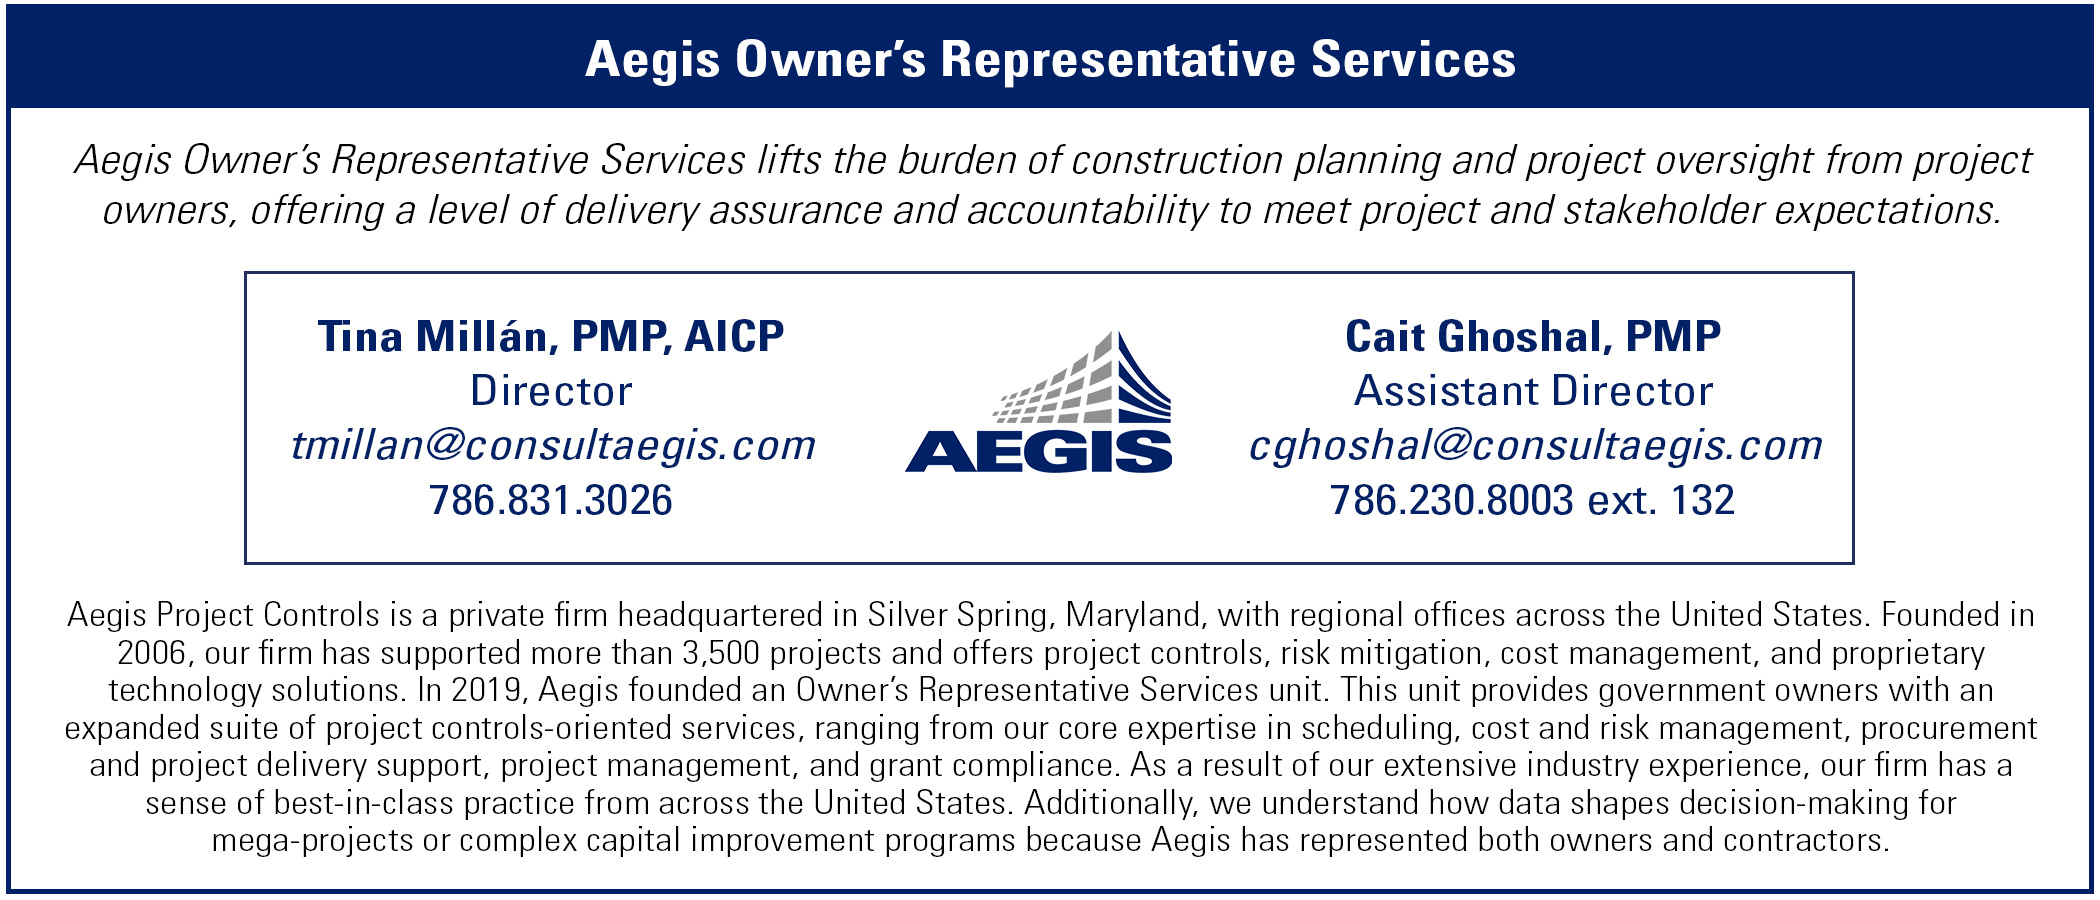 Contact info for Aegis' Owner's Representative Services group